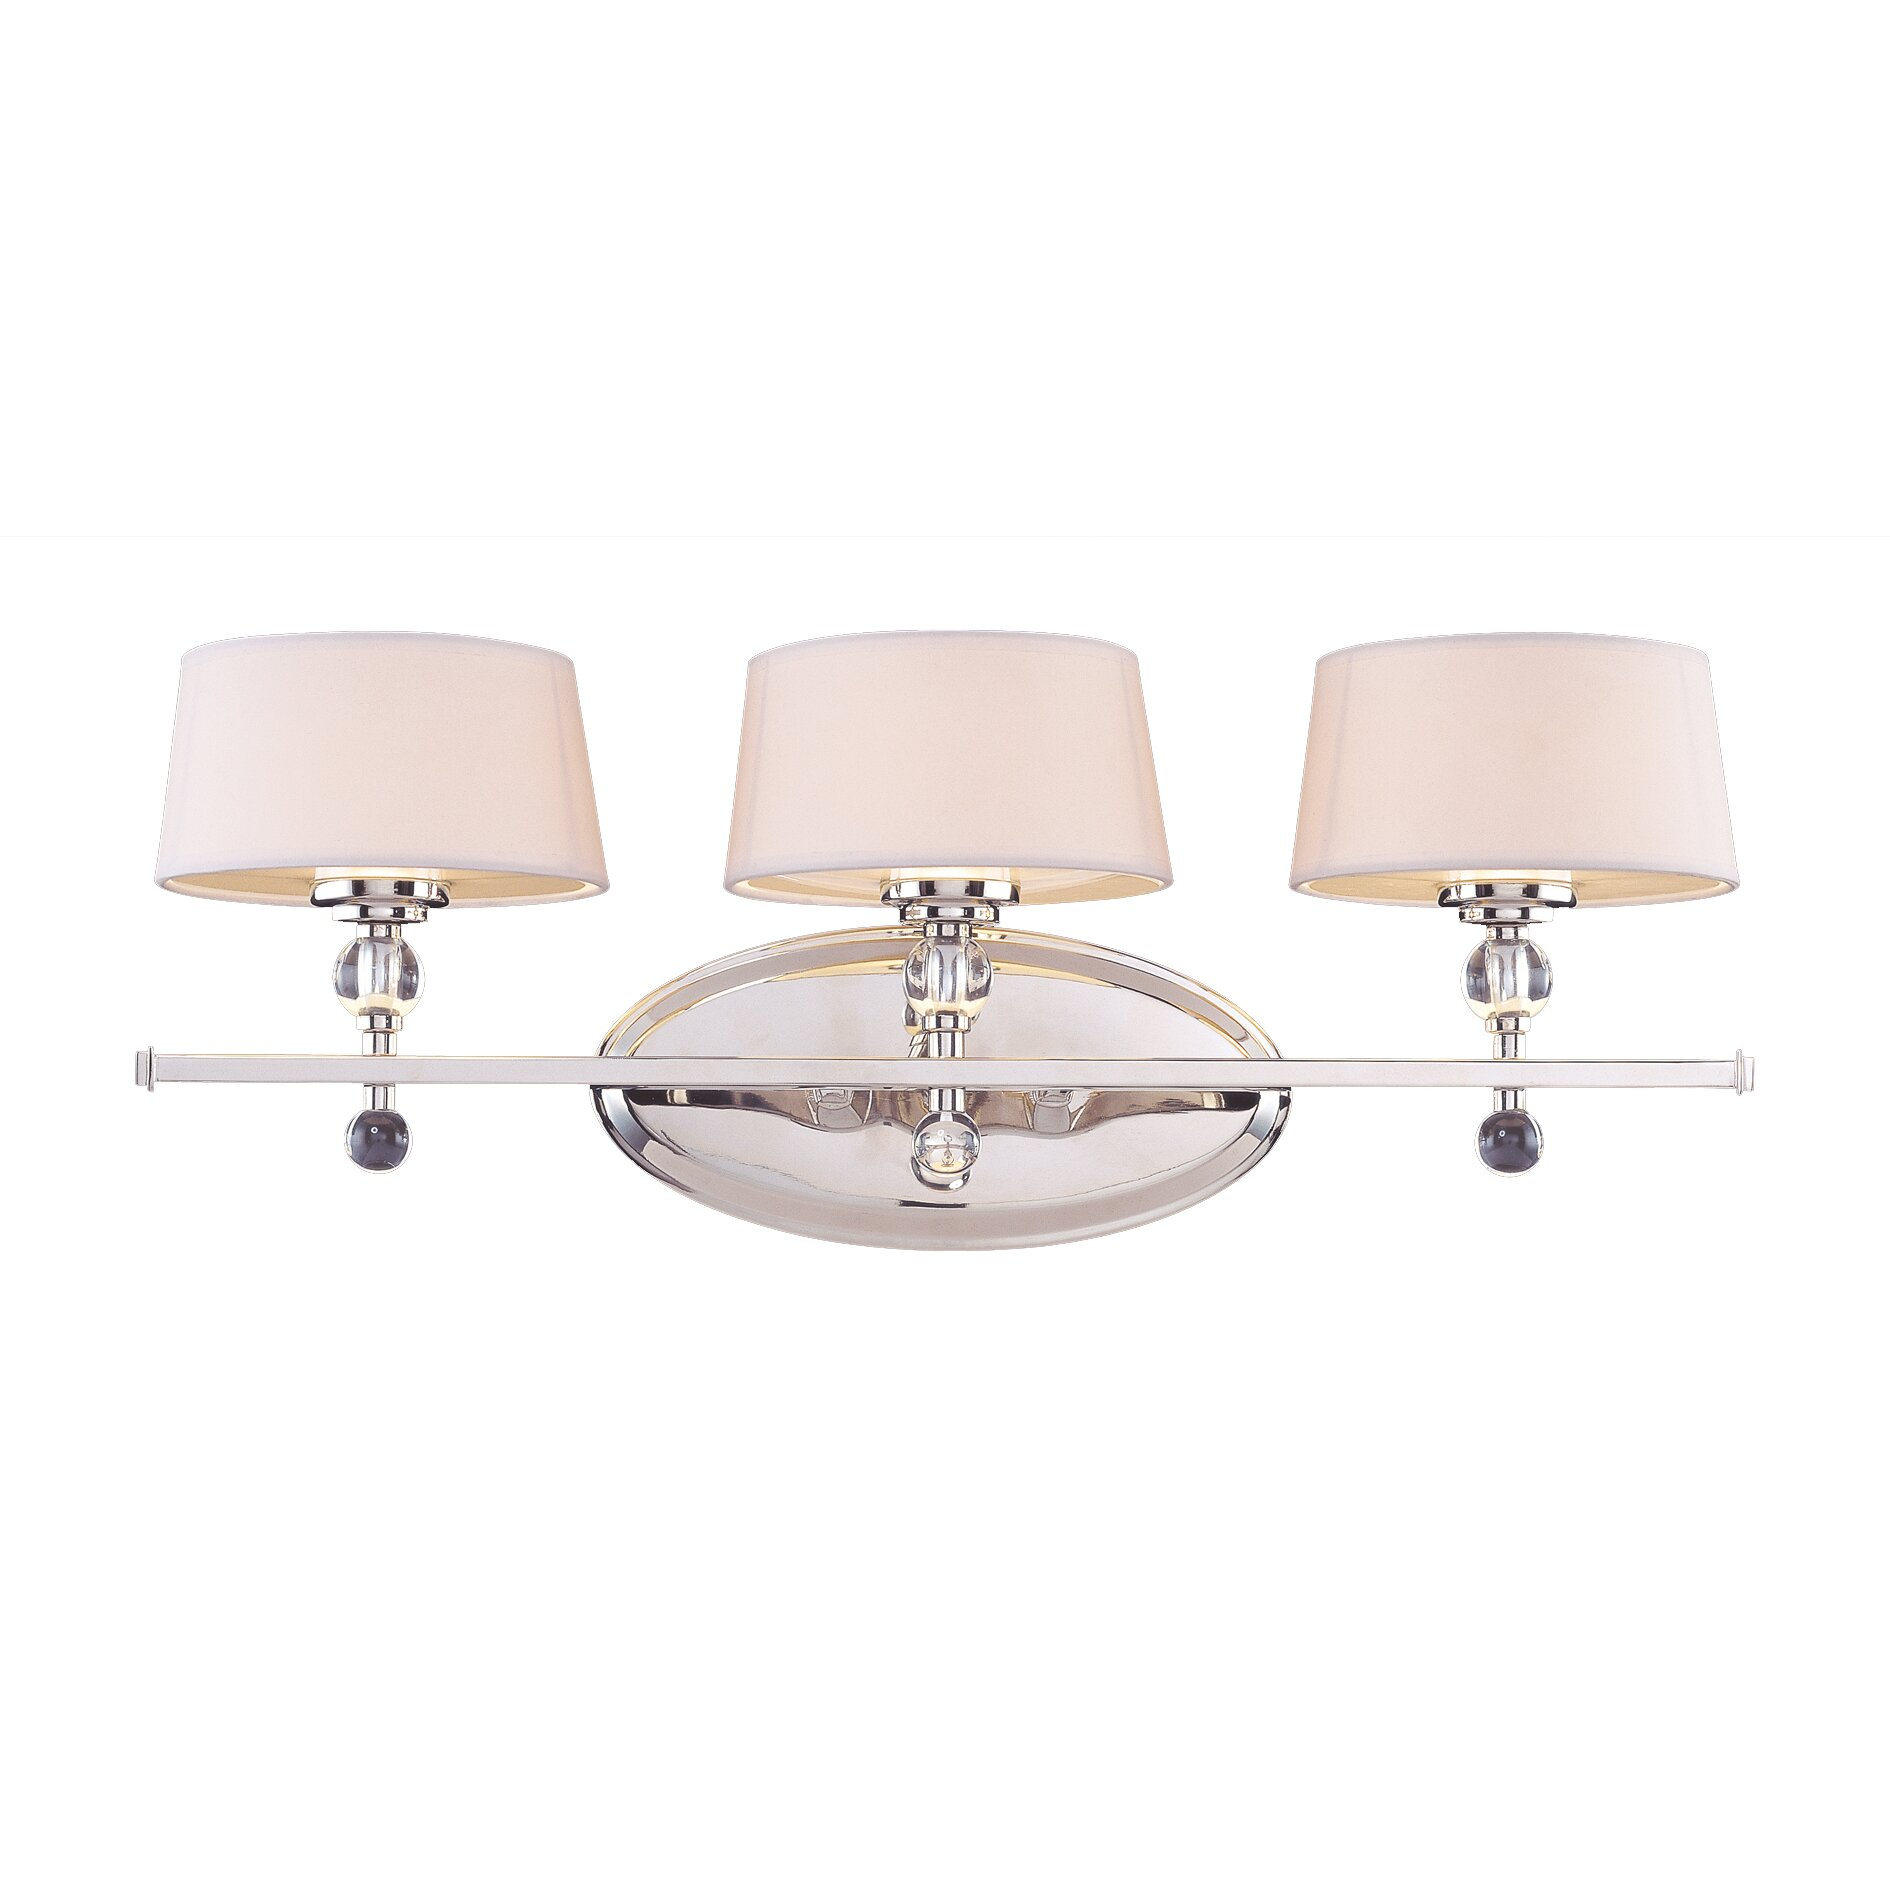 Mercer41 Knisley 3 Light Bath Vanity Light & Reviews